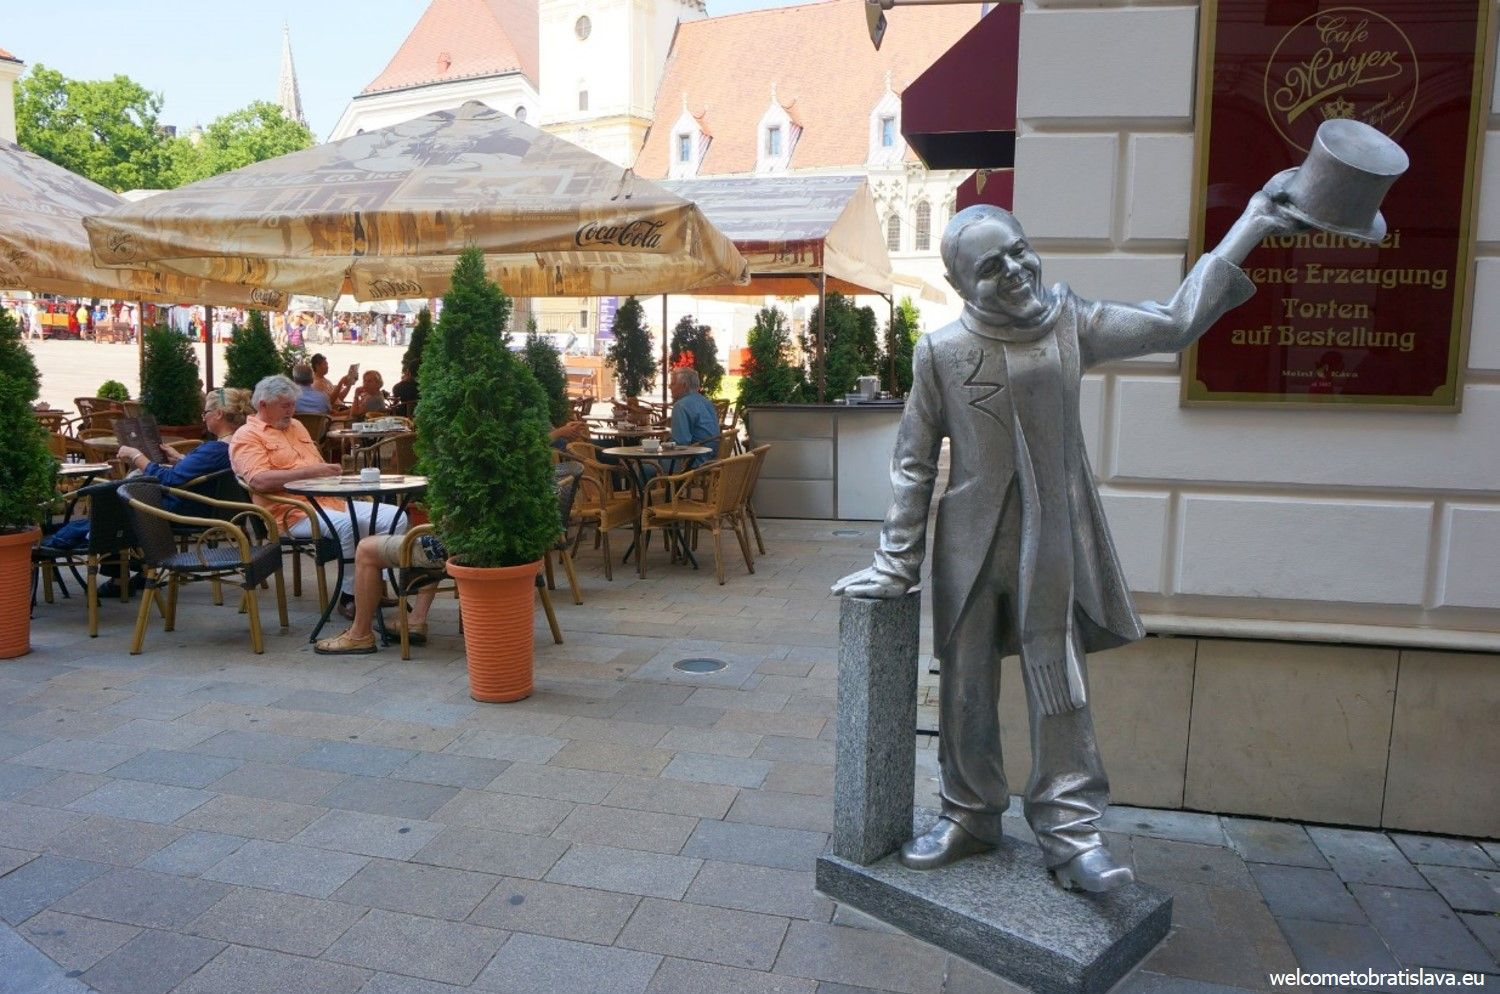 Kaffee Mayer is located at our Main square